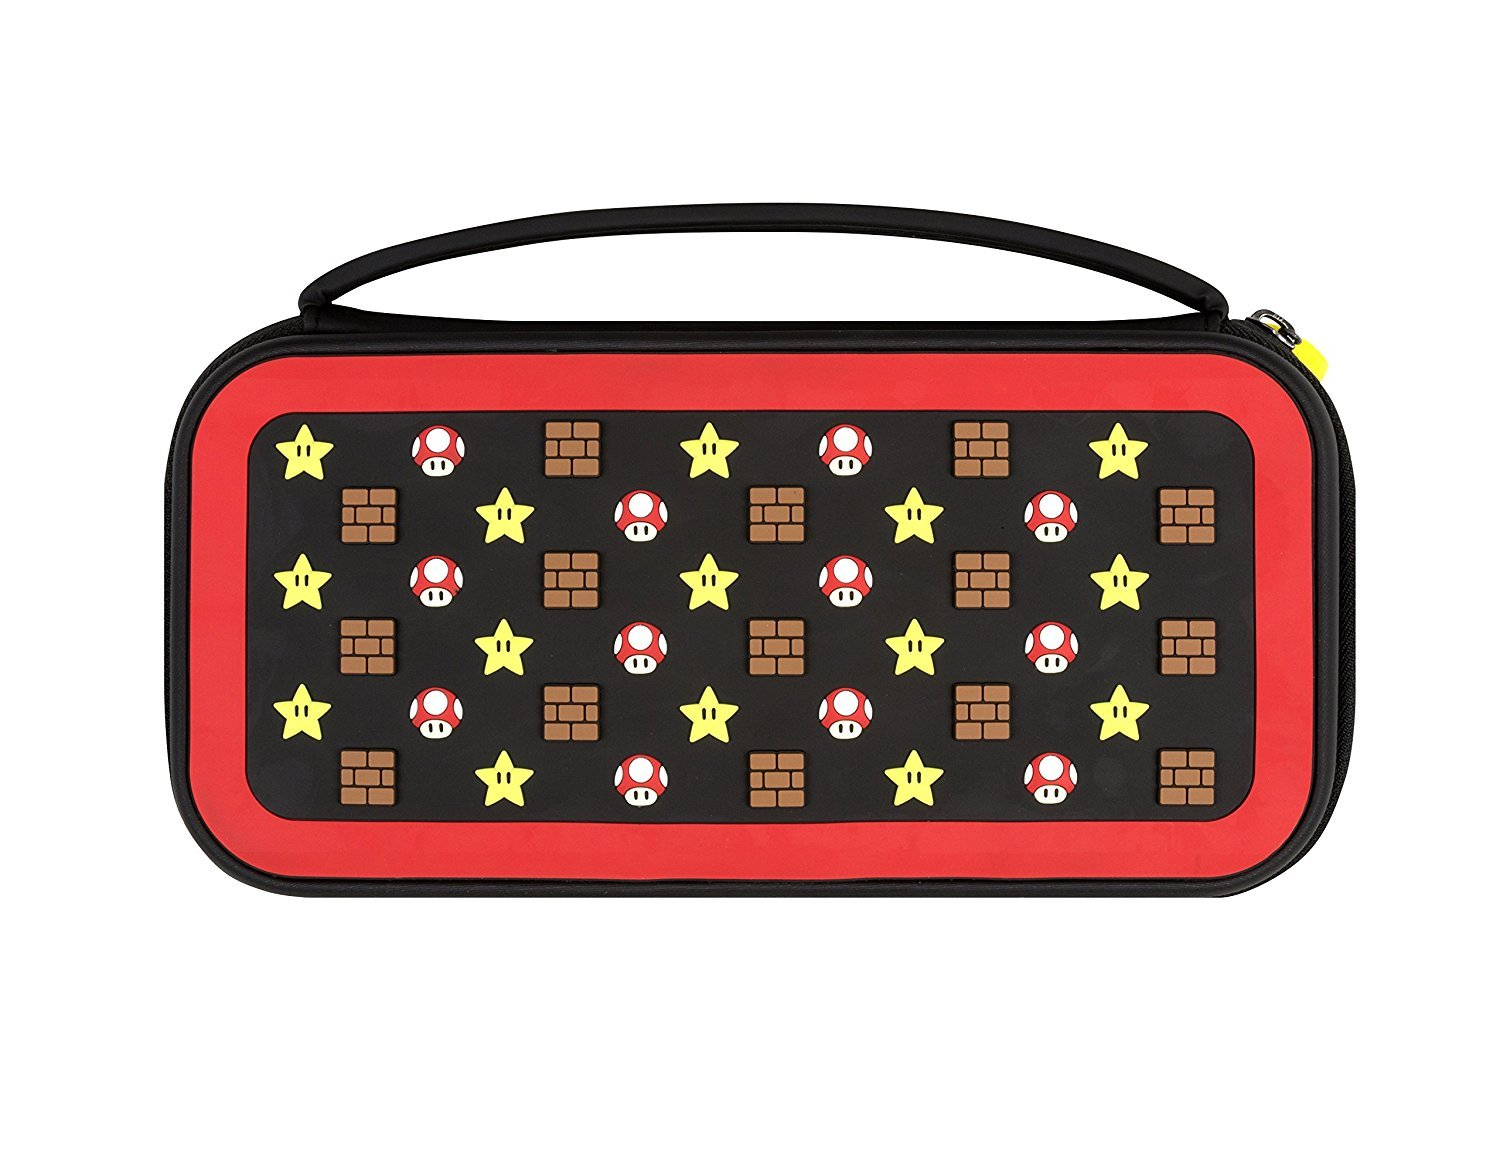 Nintendo Switch Starter Kit - Mario Pattern Edition for Nintendo Switch image